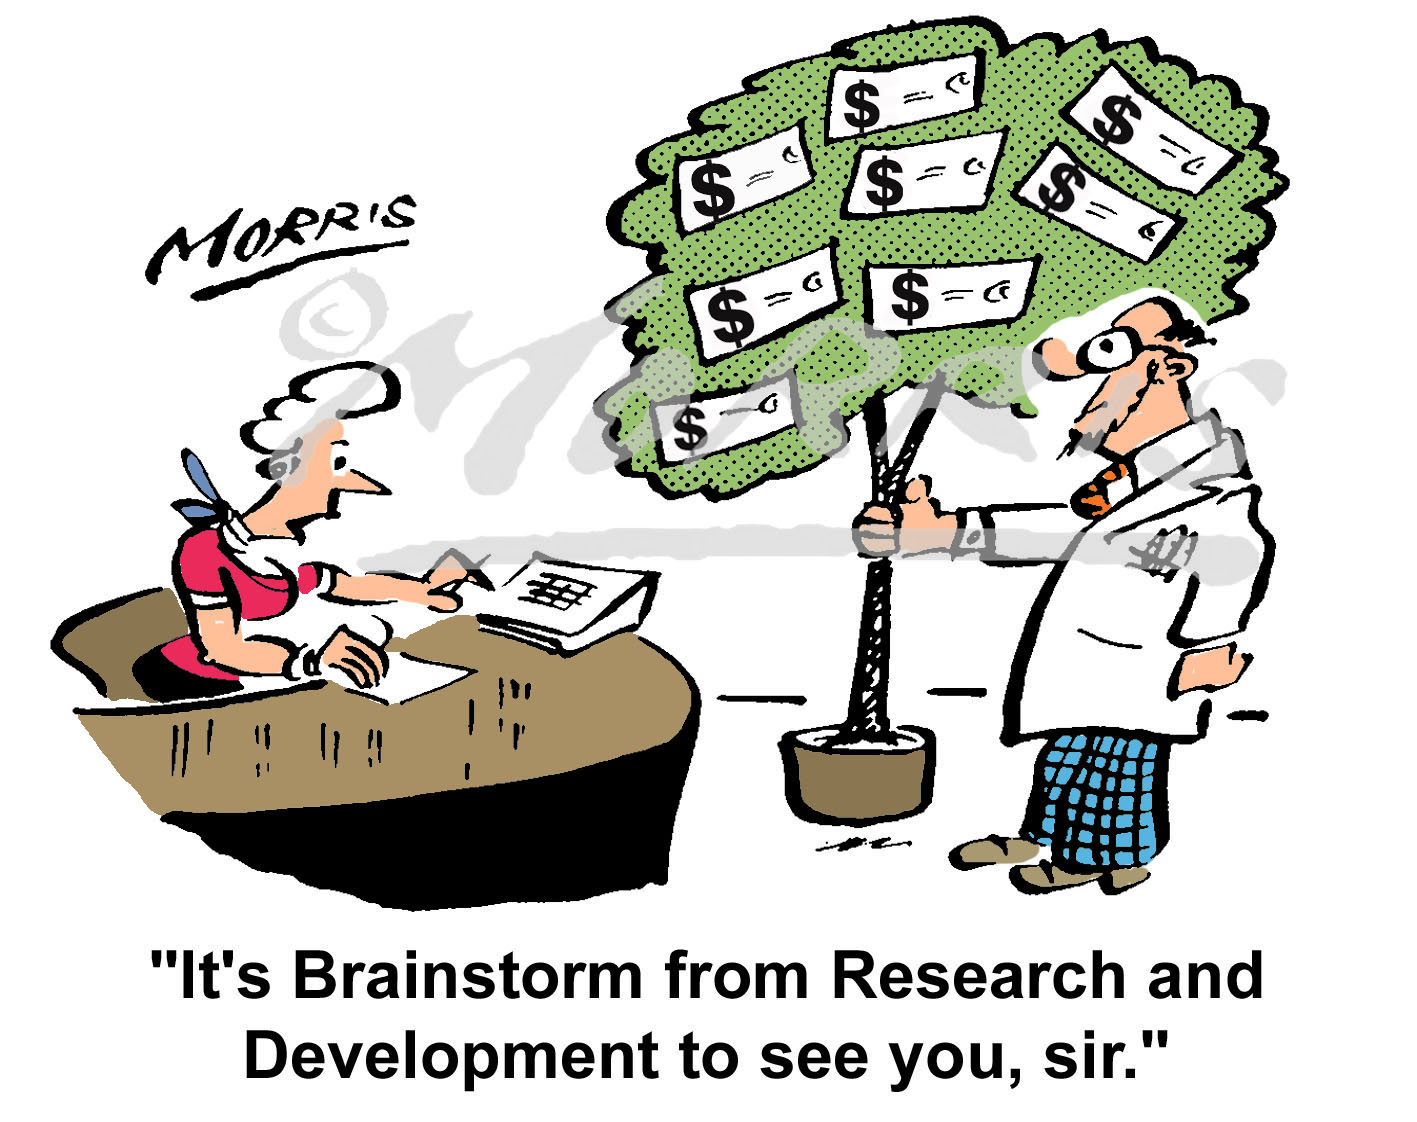 Research and Development comic cartoon – Ref: 2209colus